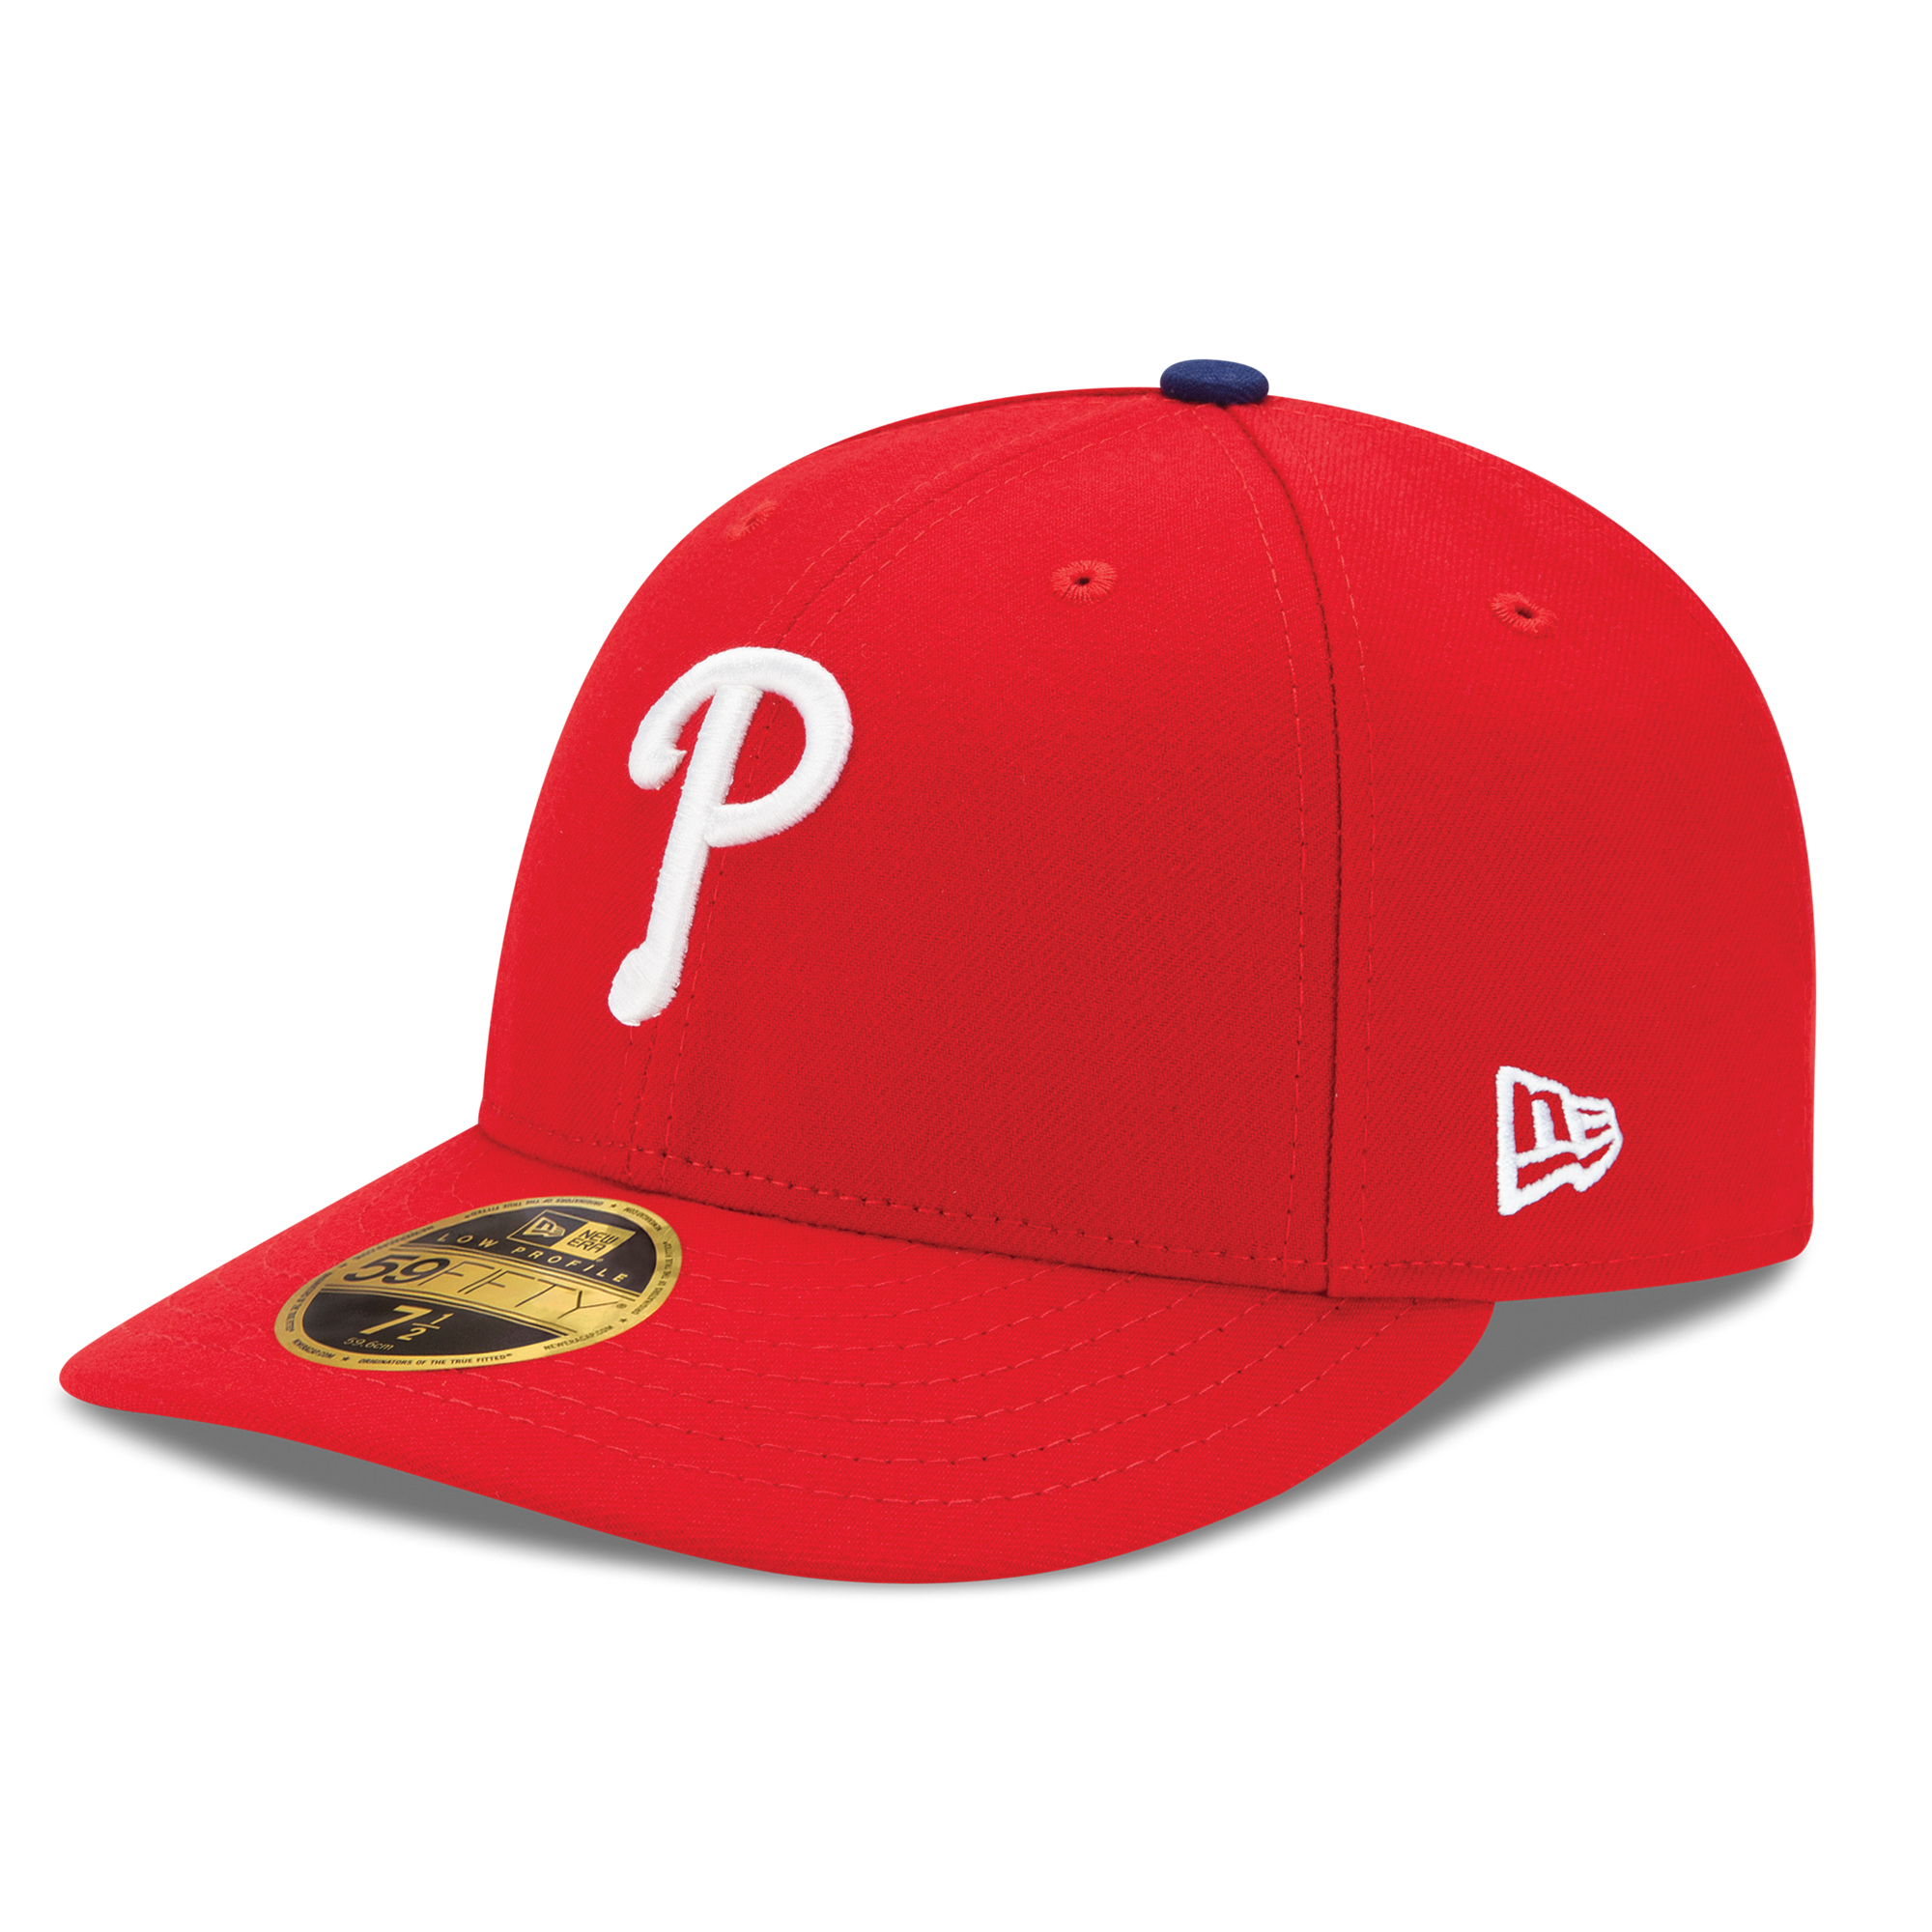 Philadelphia Phillies New Era Authentic Collection On Field Low Profile Game 59FIFTY Fitted Hat - Red